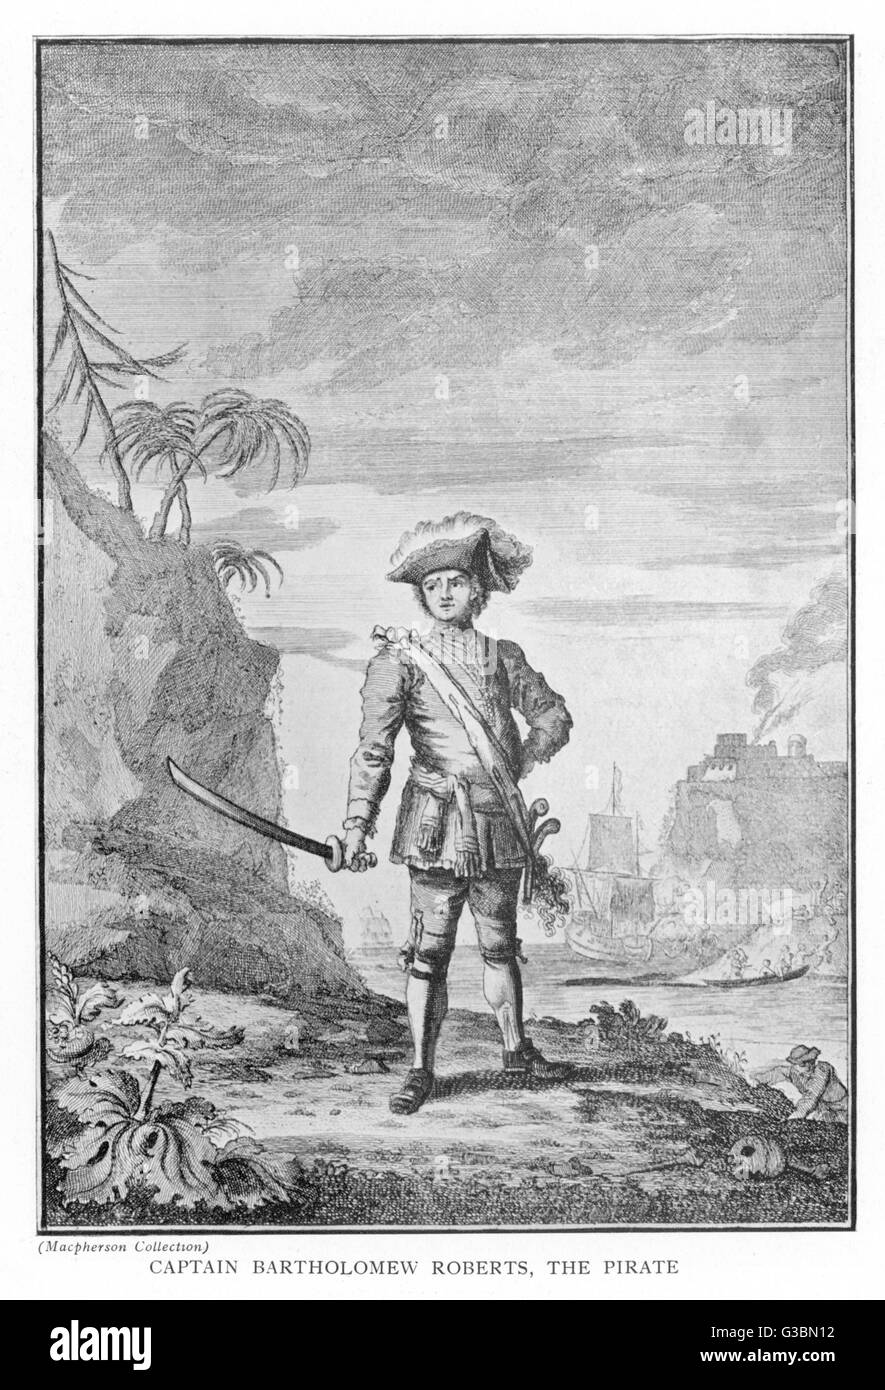 BARTHOLOMEW ROBERTS  Captain Roberts, the pirate  with sword in hand and tricorn hat      Date: Circa 1721 - Stock Image